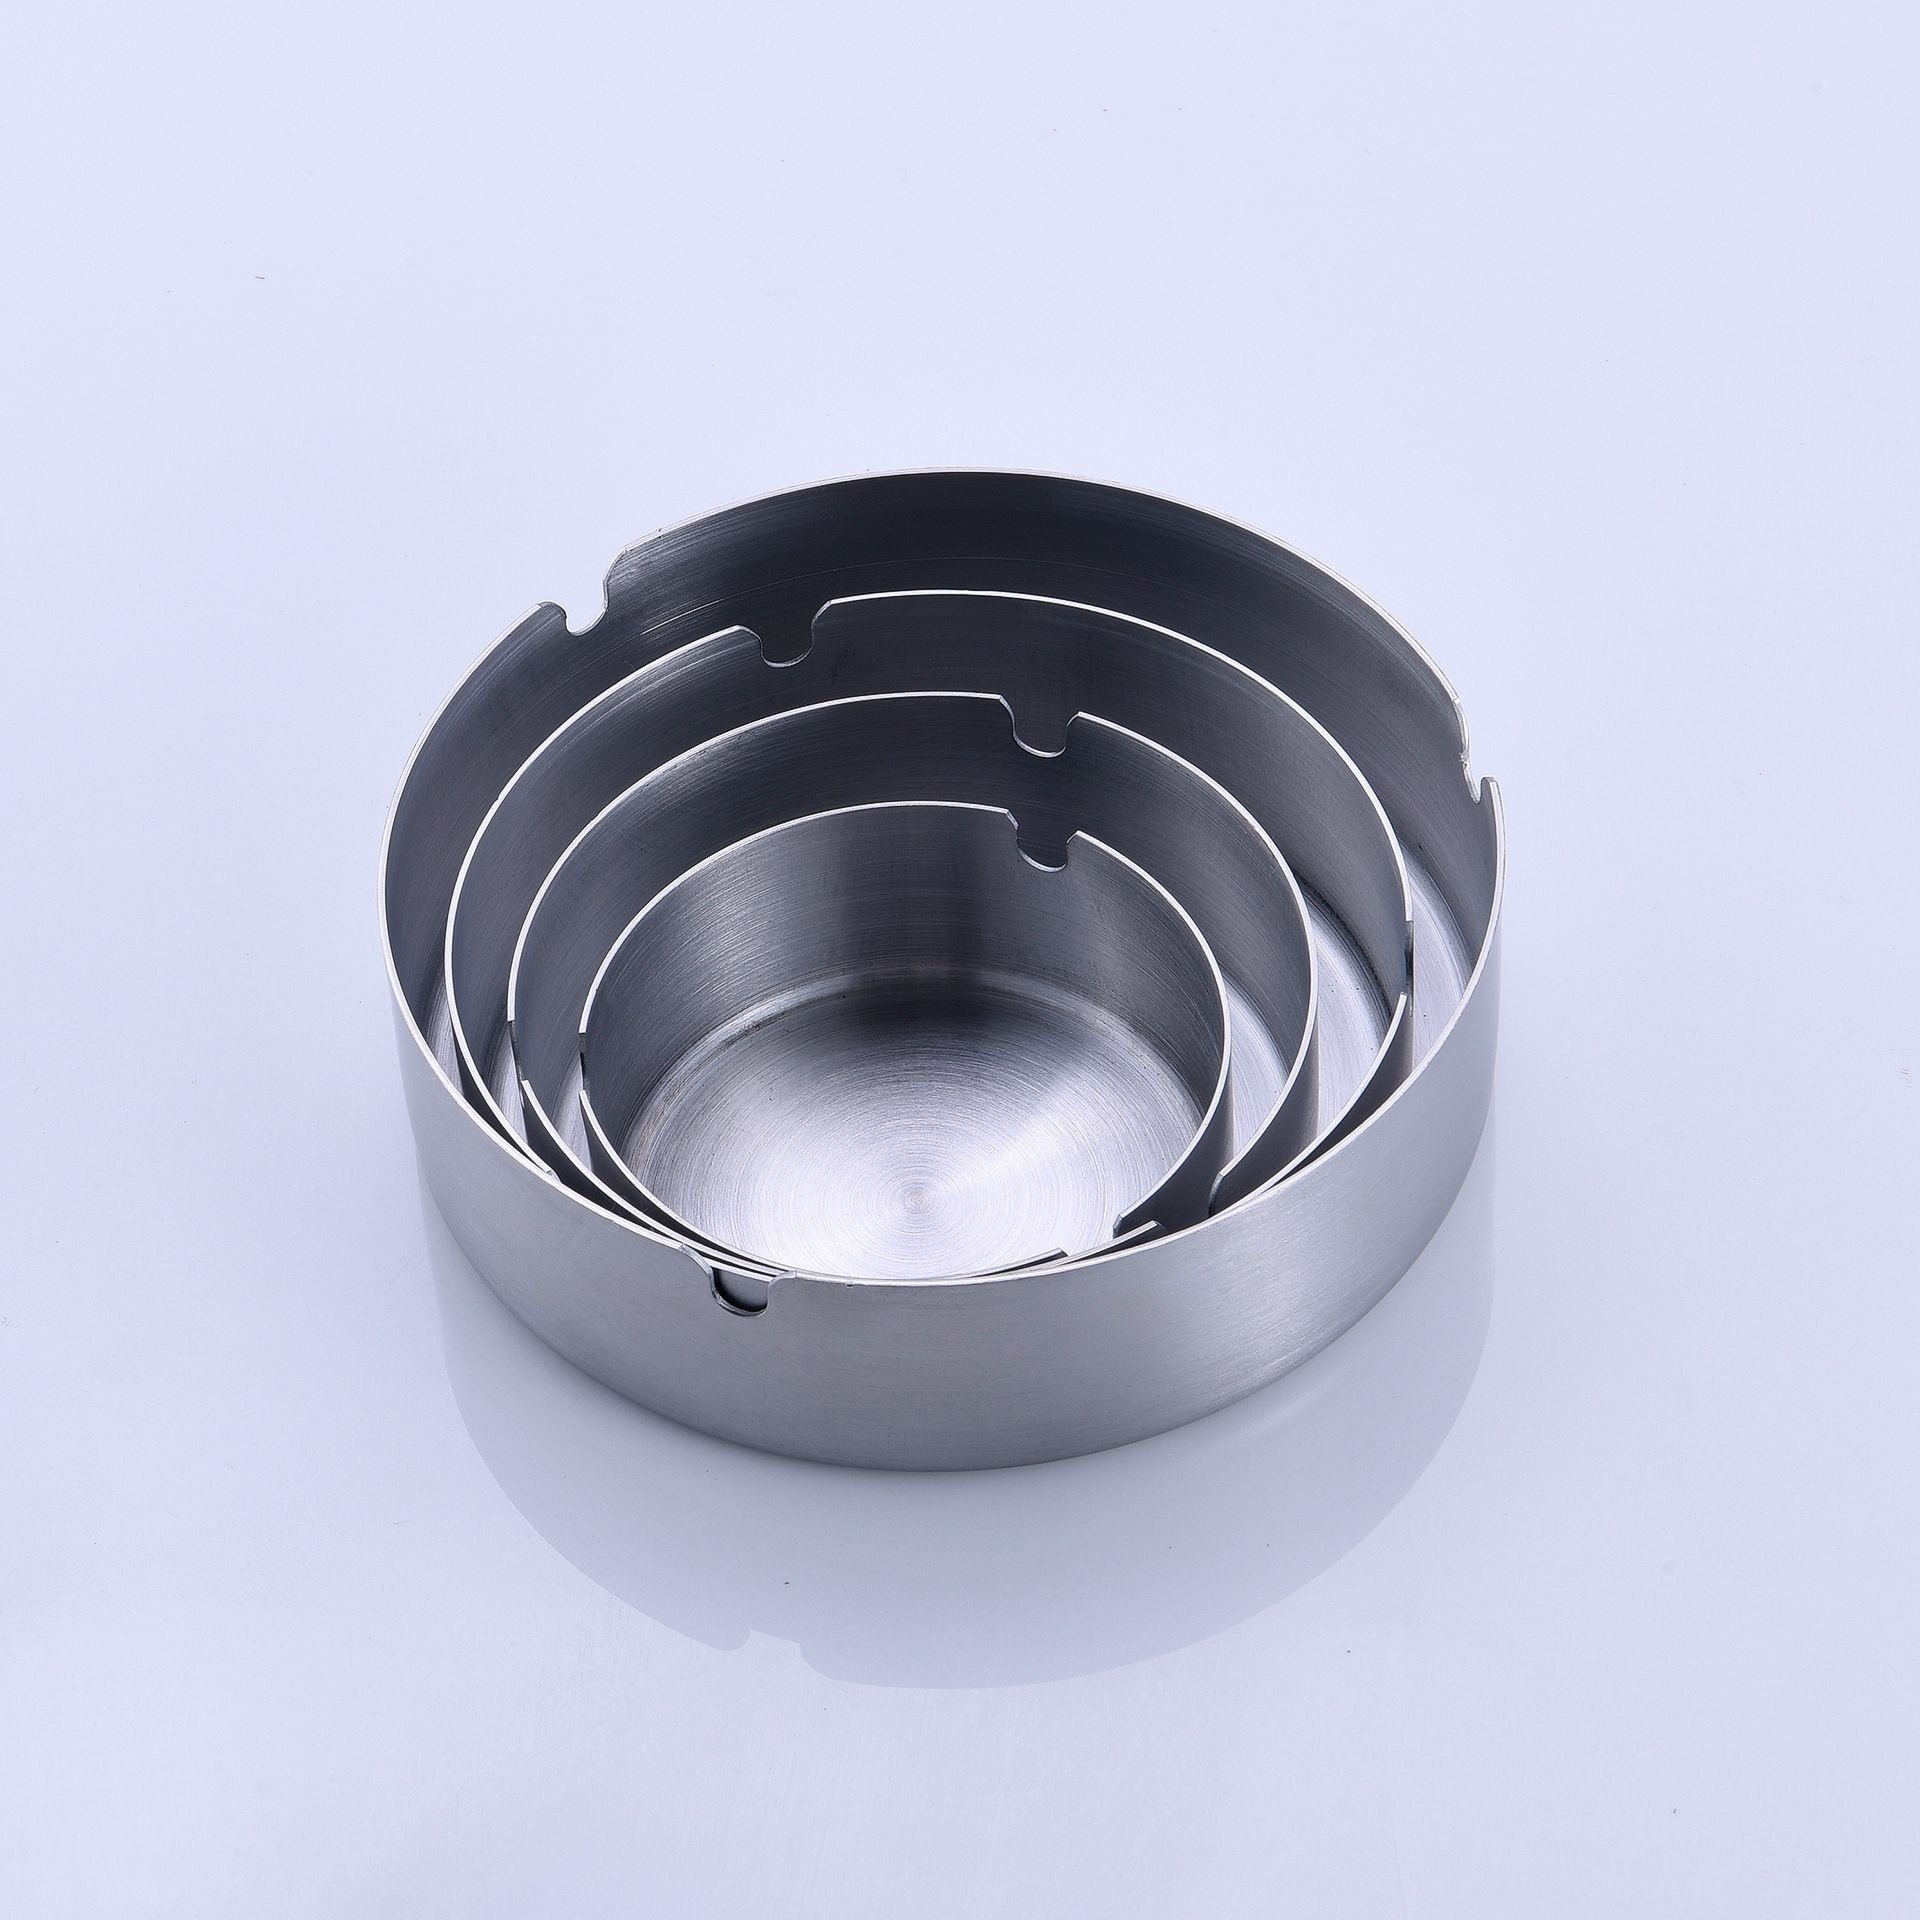 1Pcs Round Ashtray Outdoors Round Thicken Cigarette Stainless Steel Practical Cigar